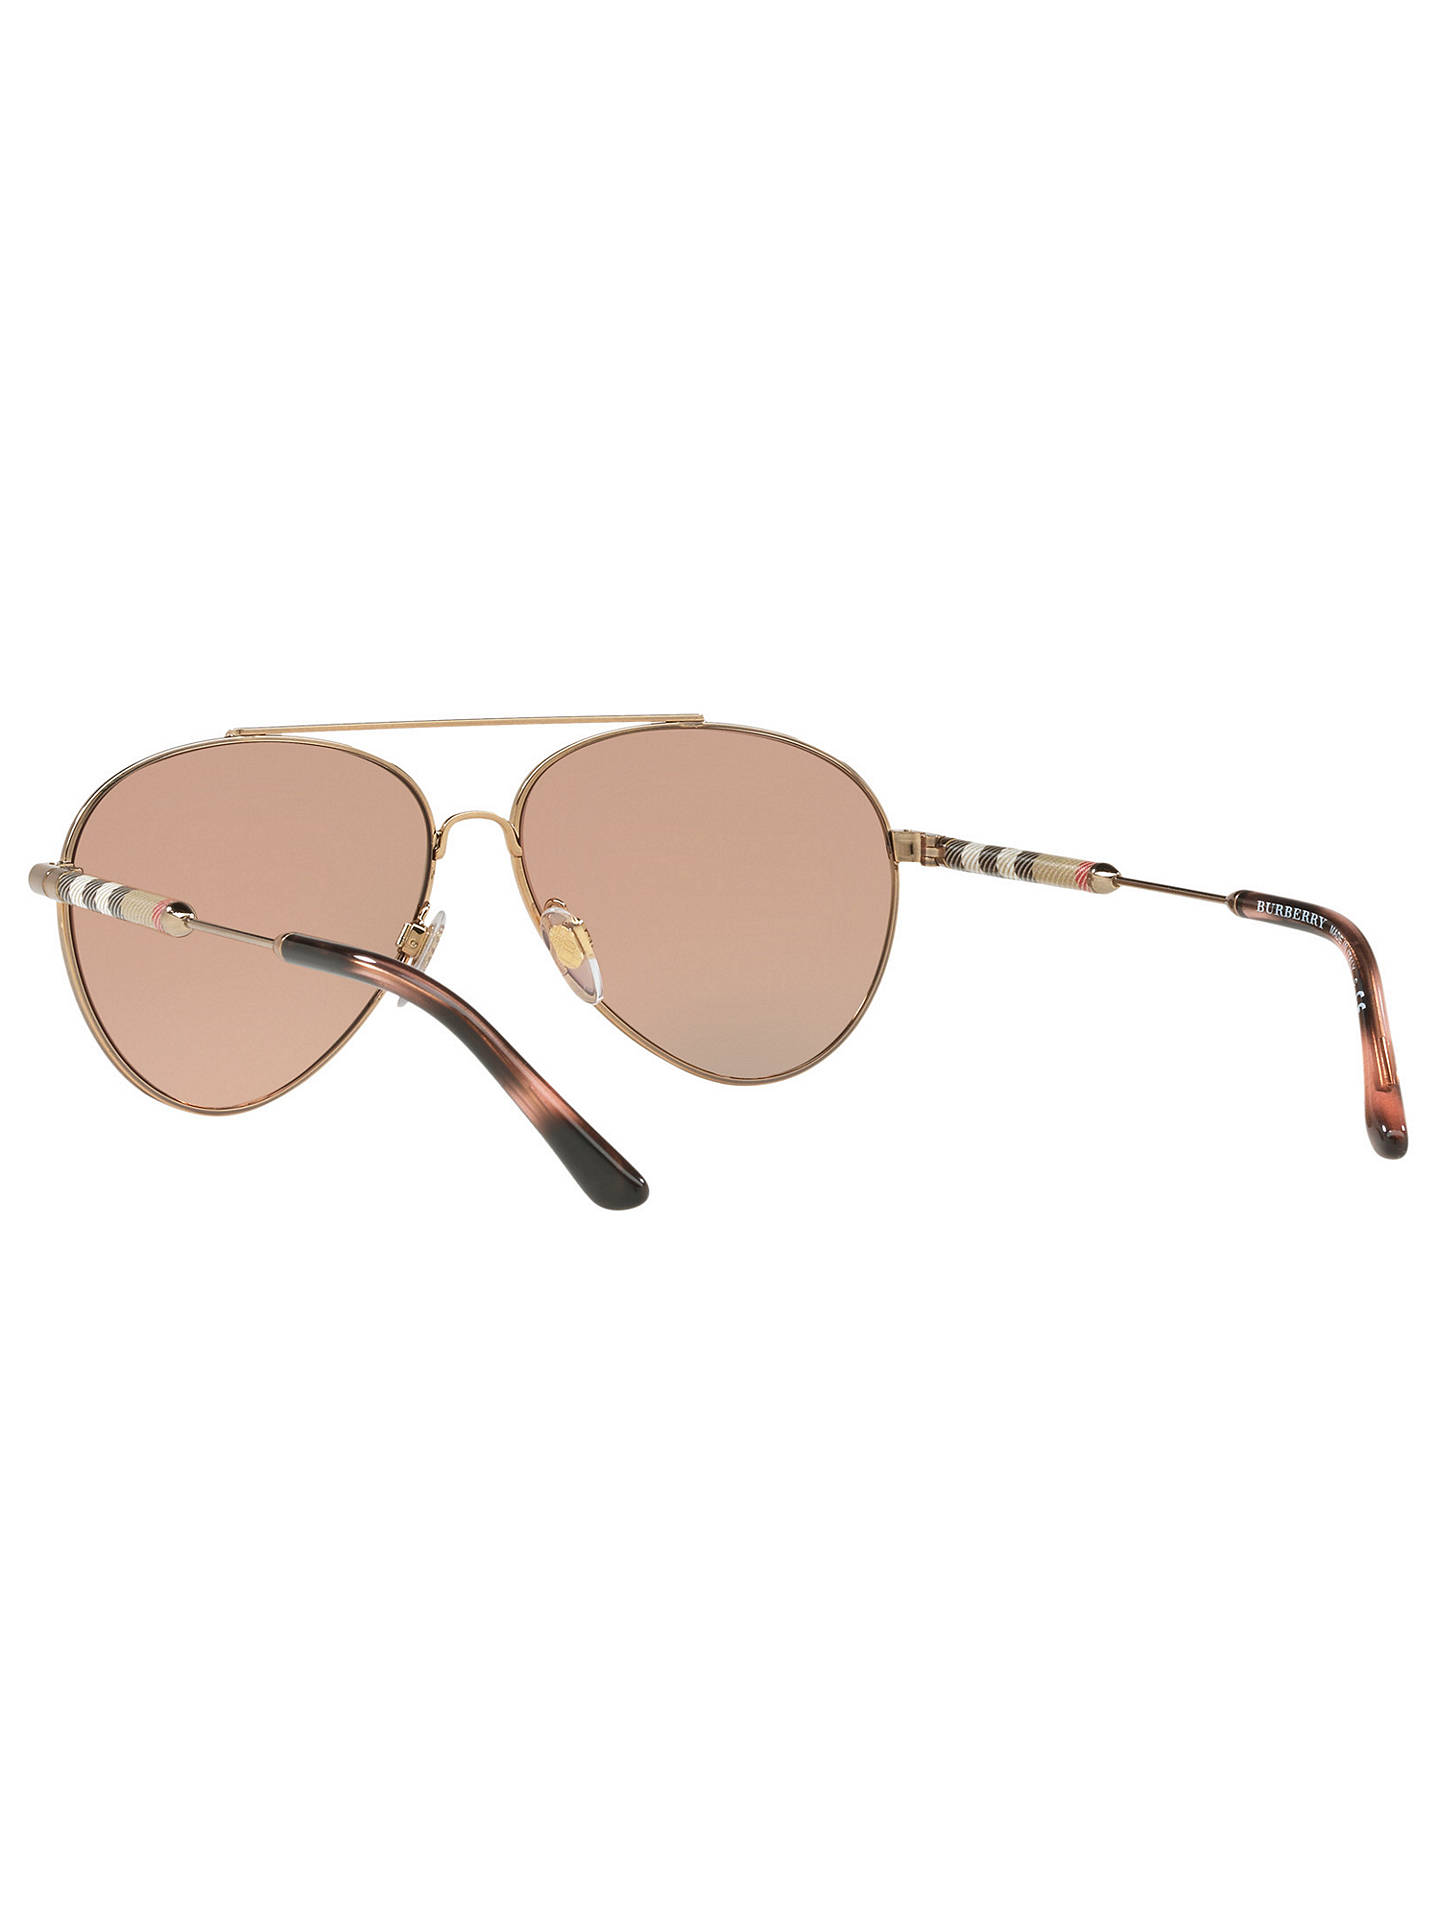 Buy Burberry BE3092Q Women's Aviator Sunglasses, Pink/Gold Online at johnlewis.com